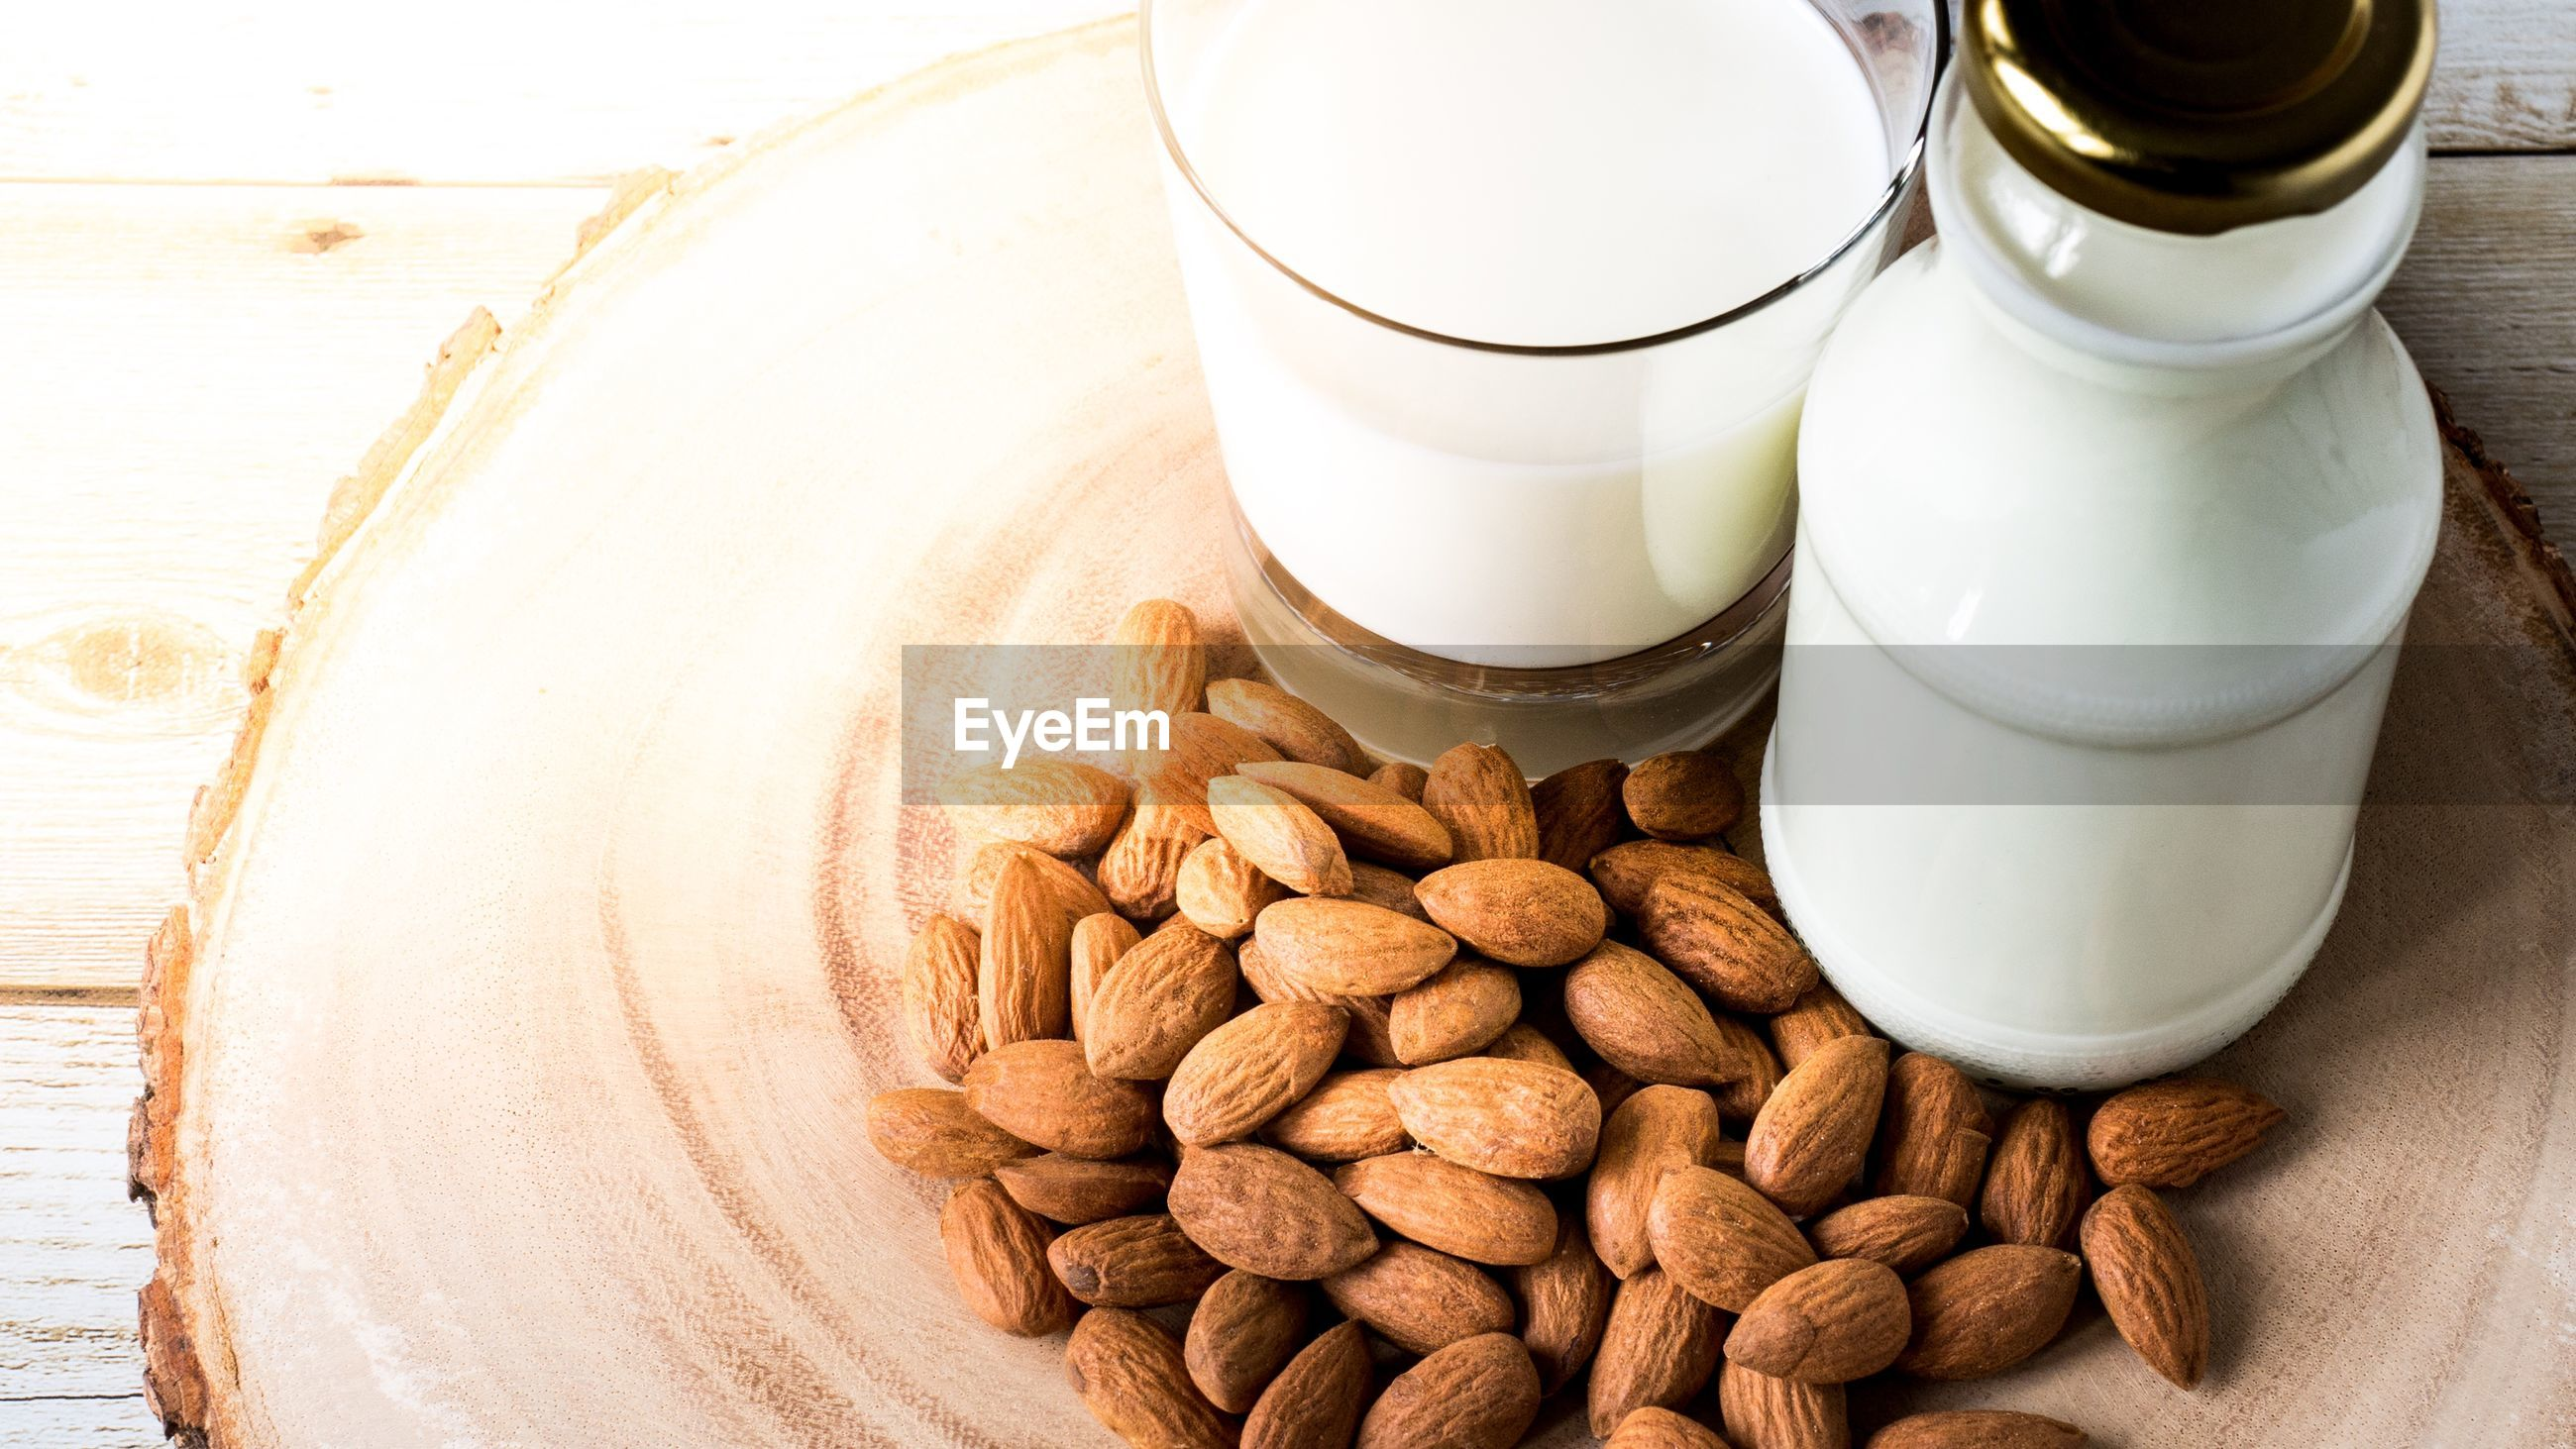 High angle view of almonds with milk on table